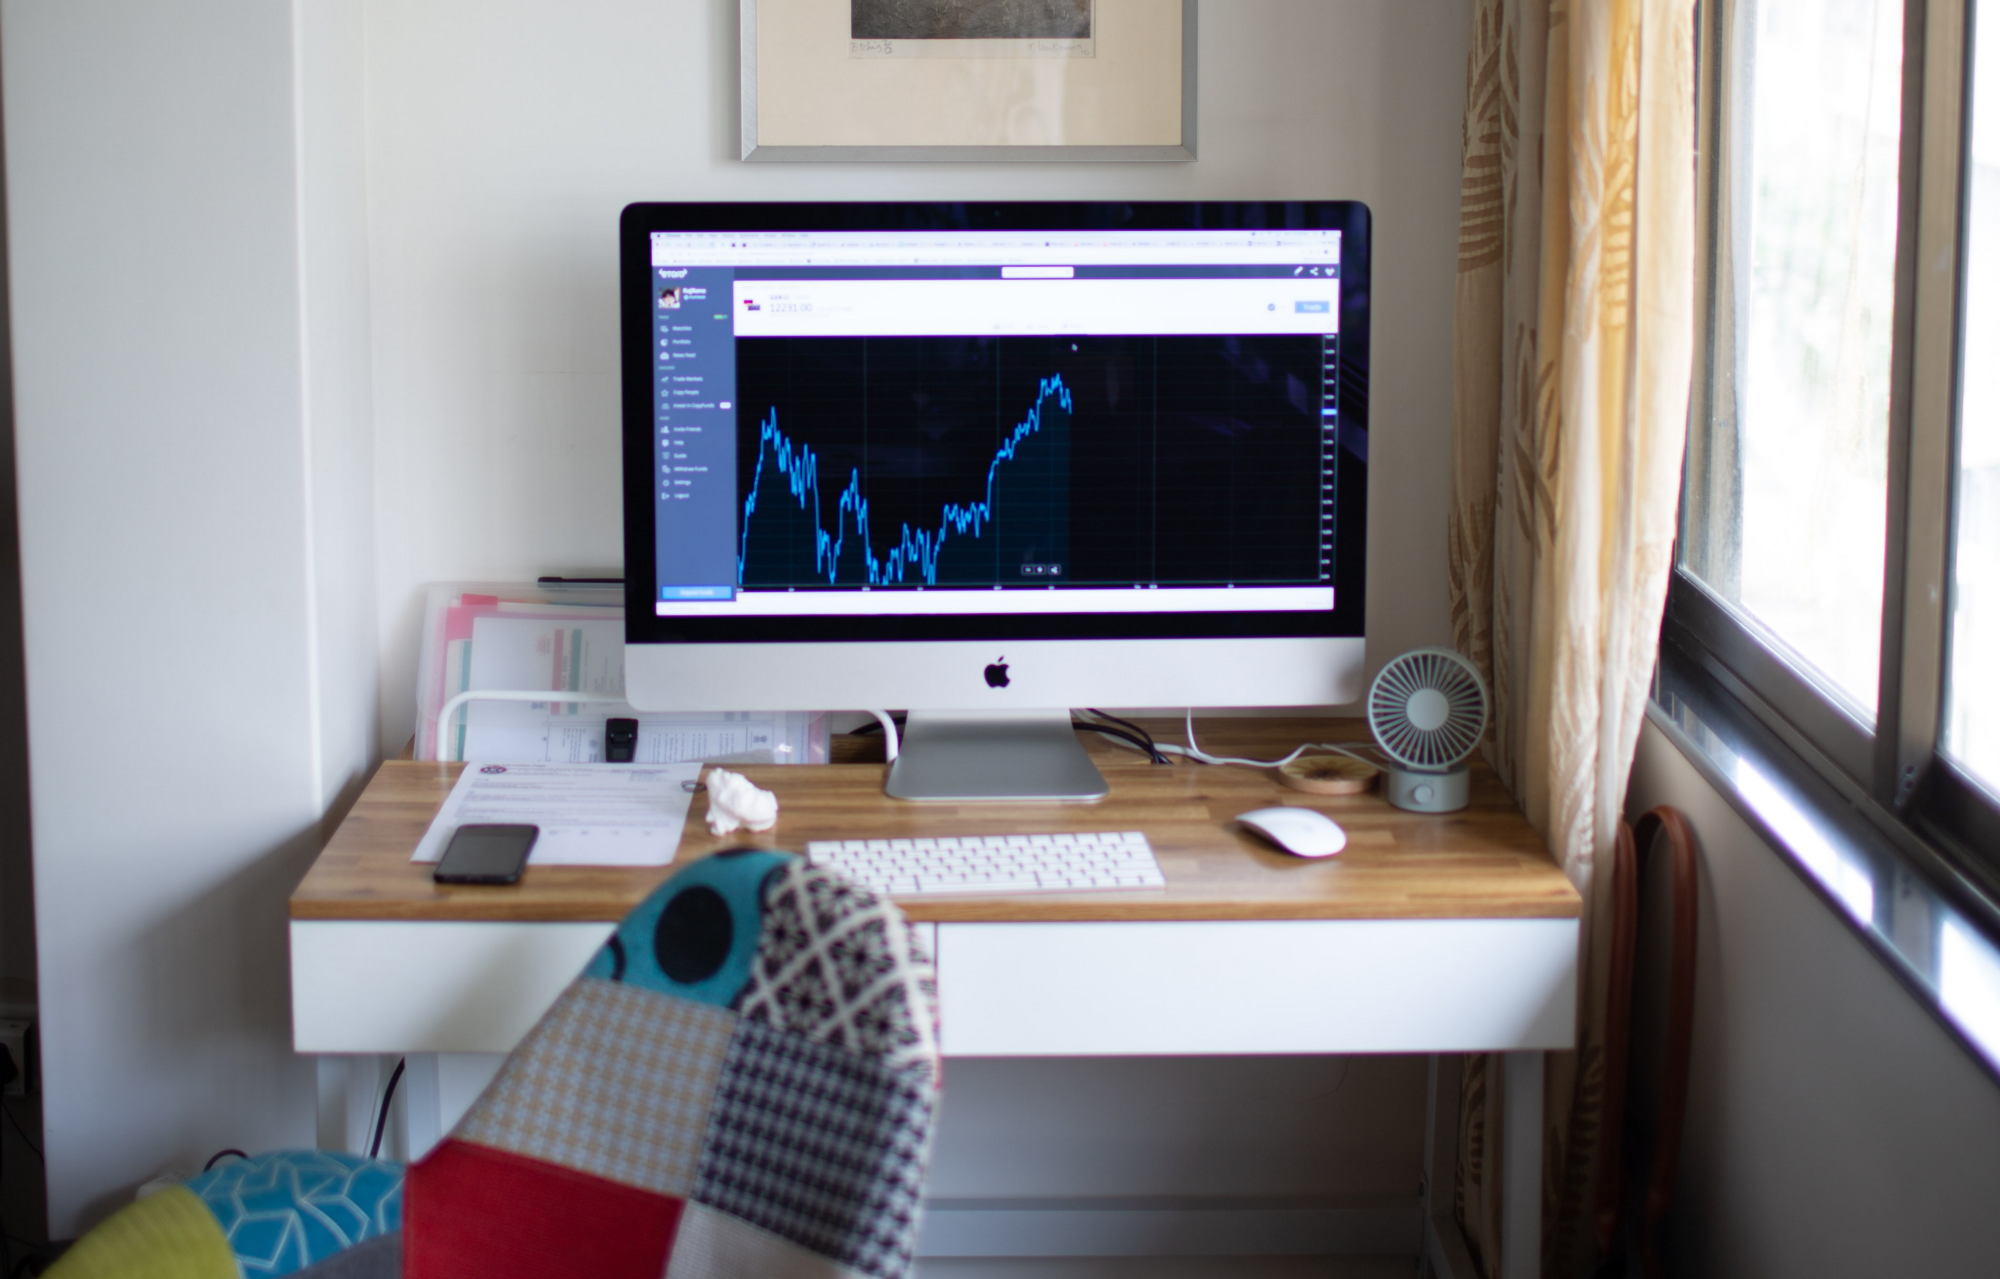 iMac with a stock chart on the screen, sitting on a wooden desk.